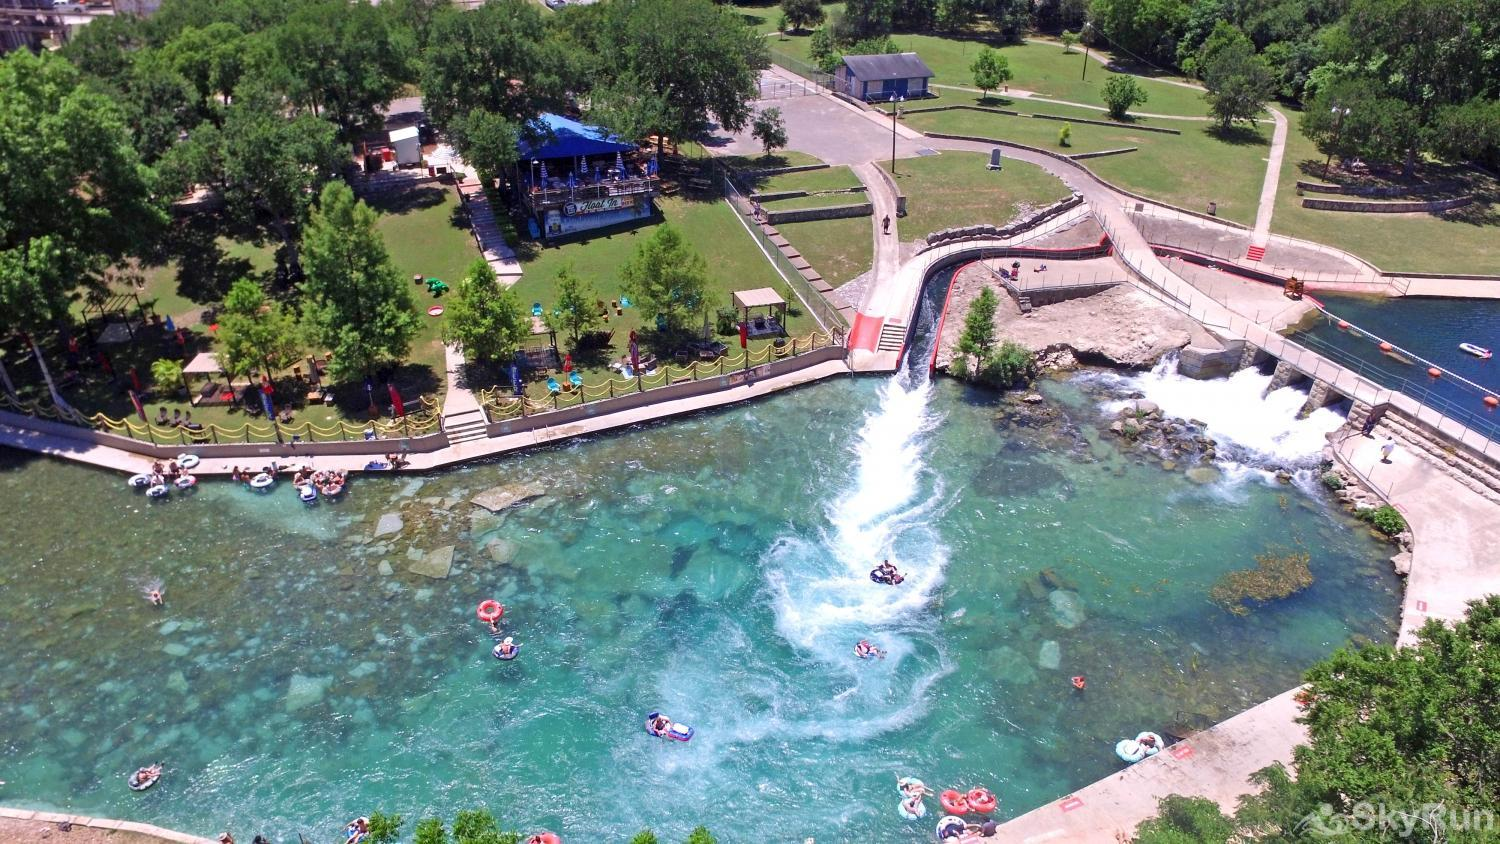 HONEY HAUS ON THE HORSESHOE Comal River Tube Chute and Downtown, 14 miles from Honey Haus